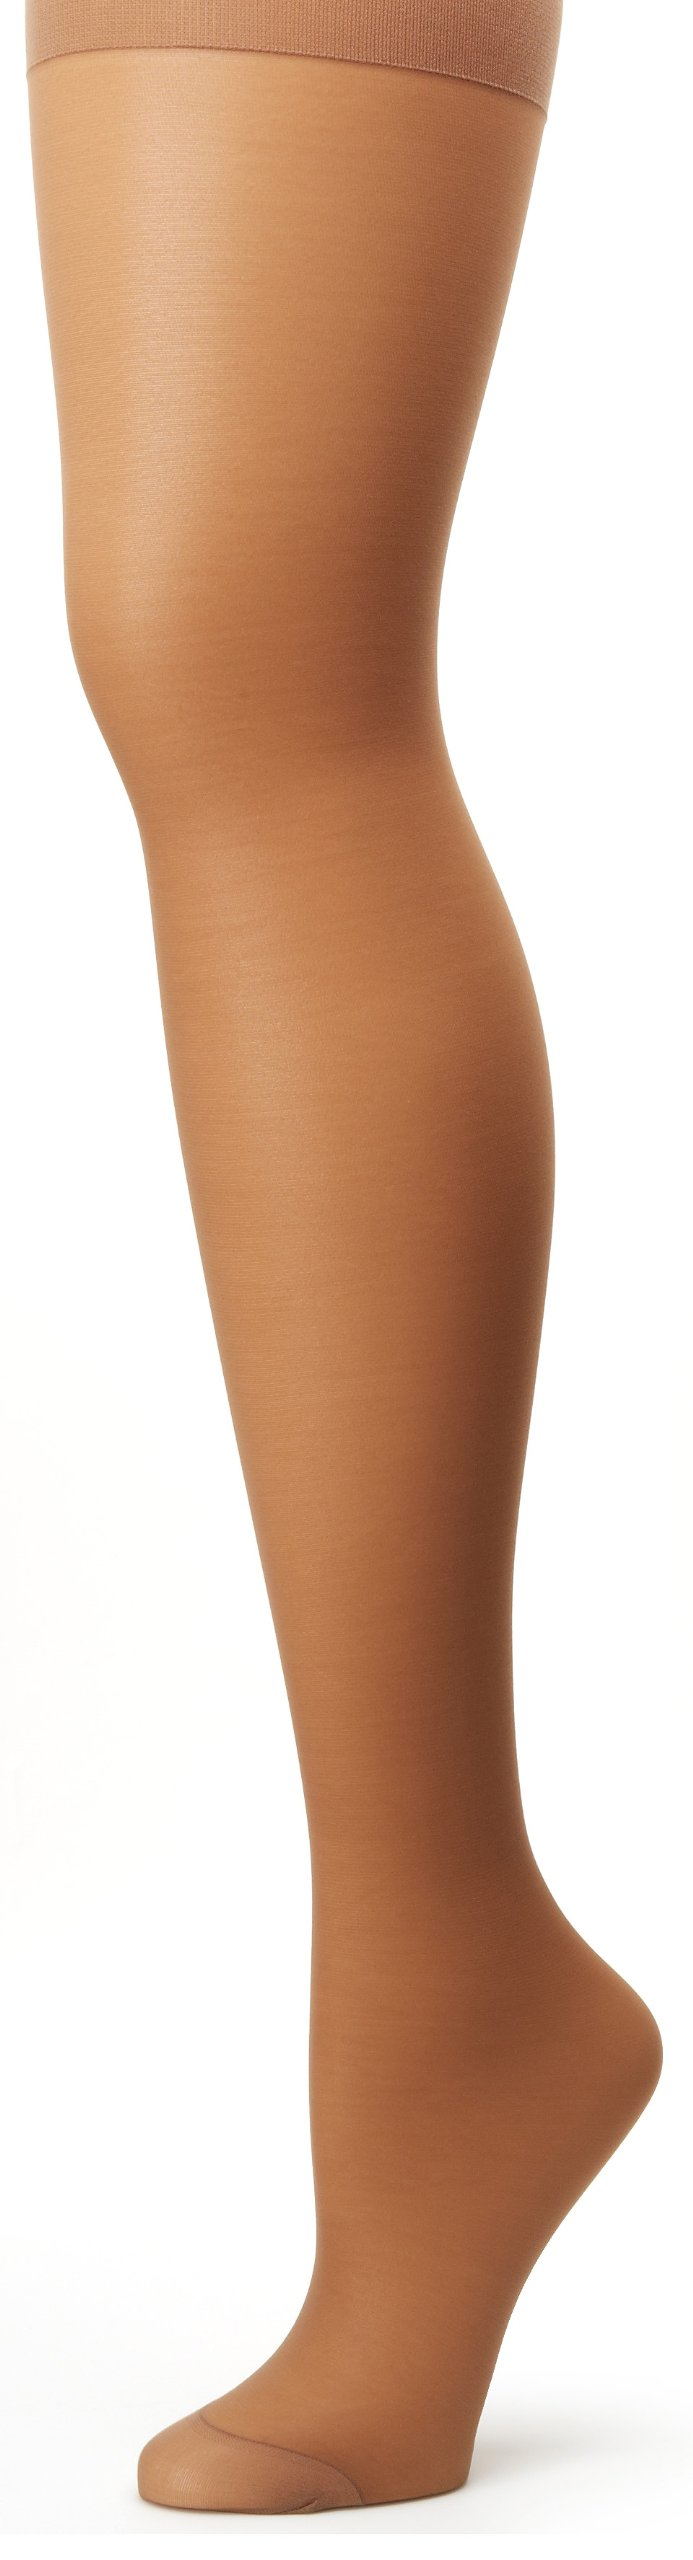 Hanes Alive Full Support Control Top R-Toe Pantyhose 2Pack_Barely There_C